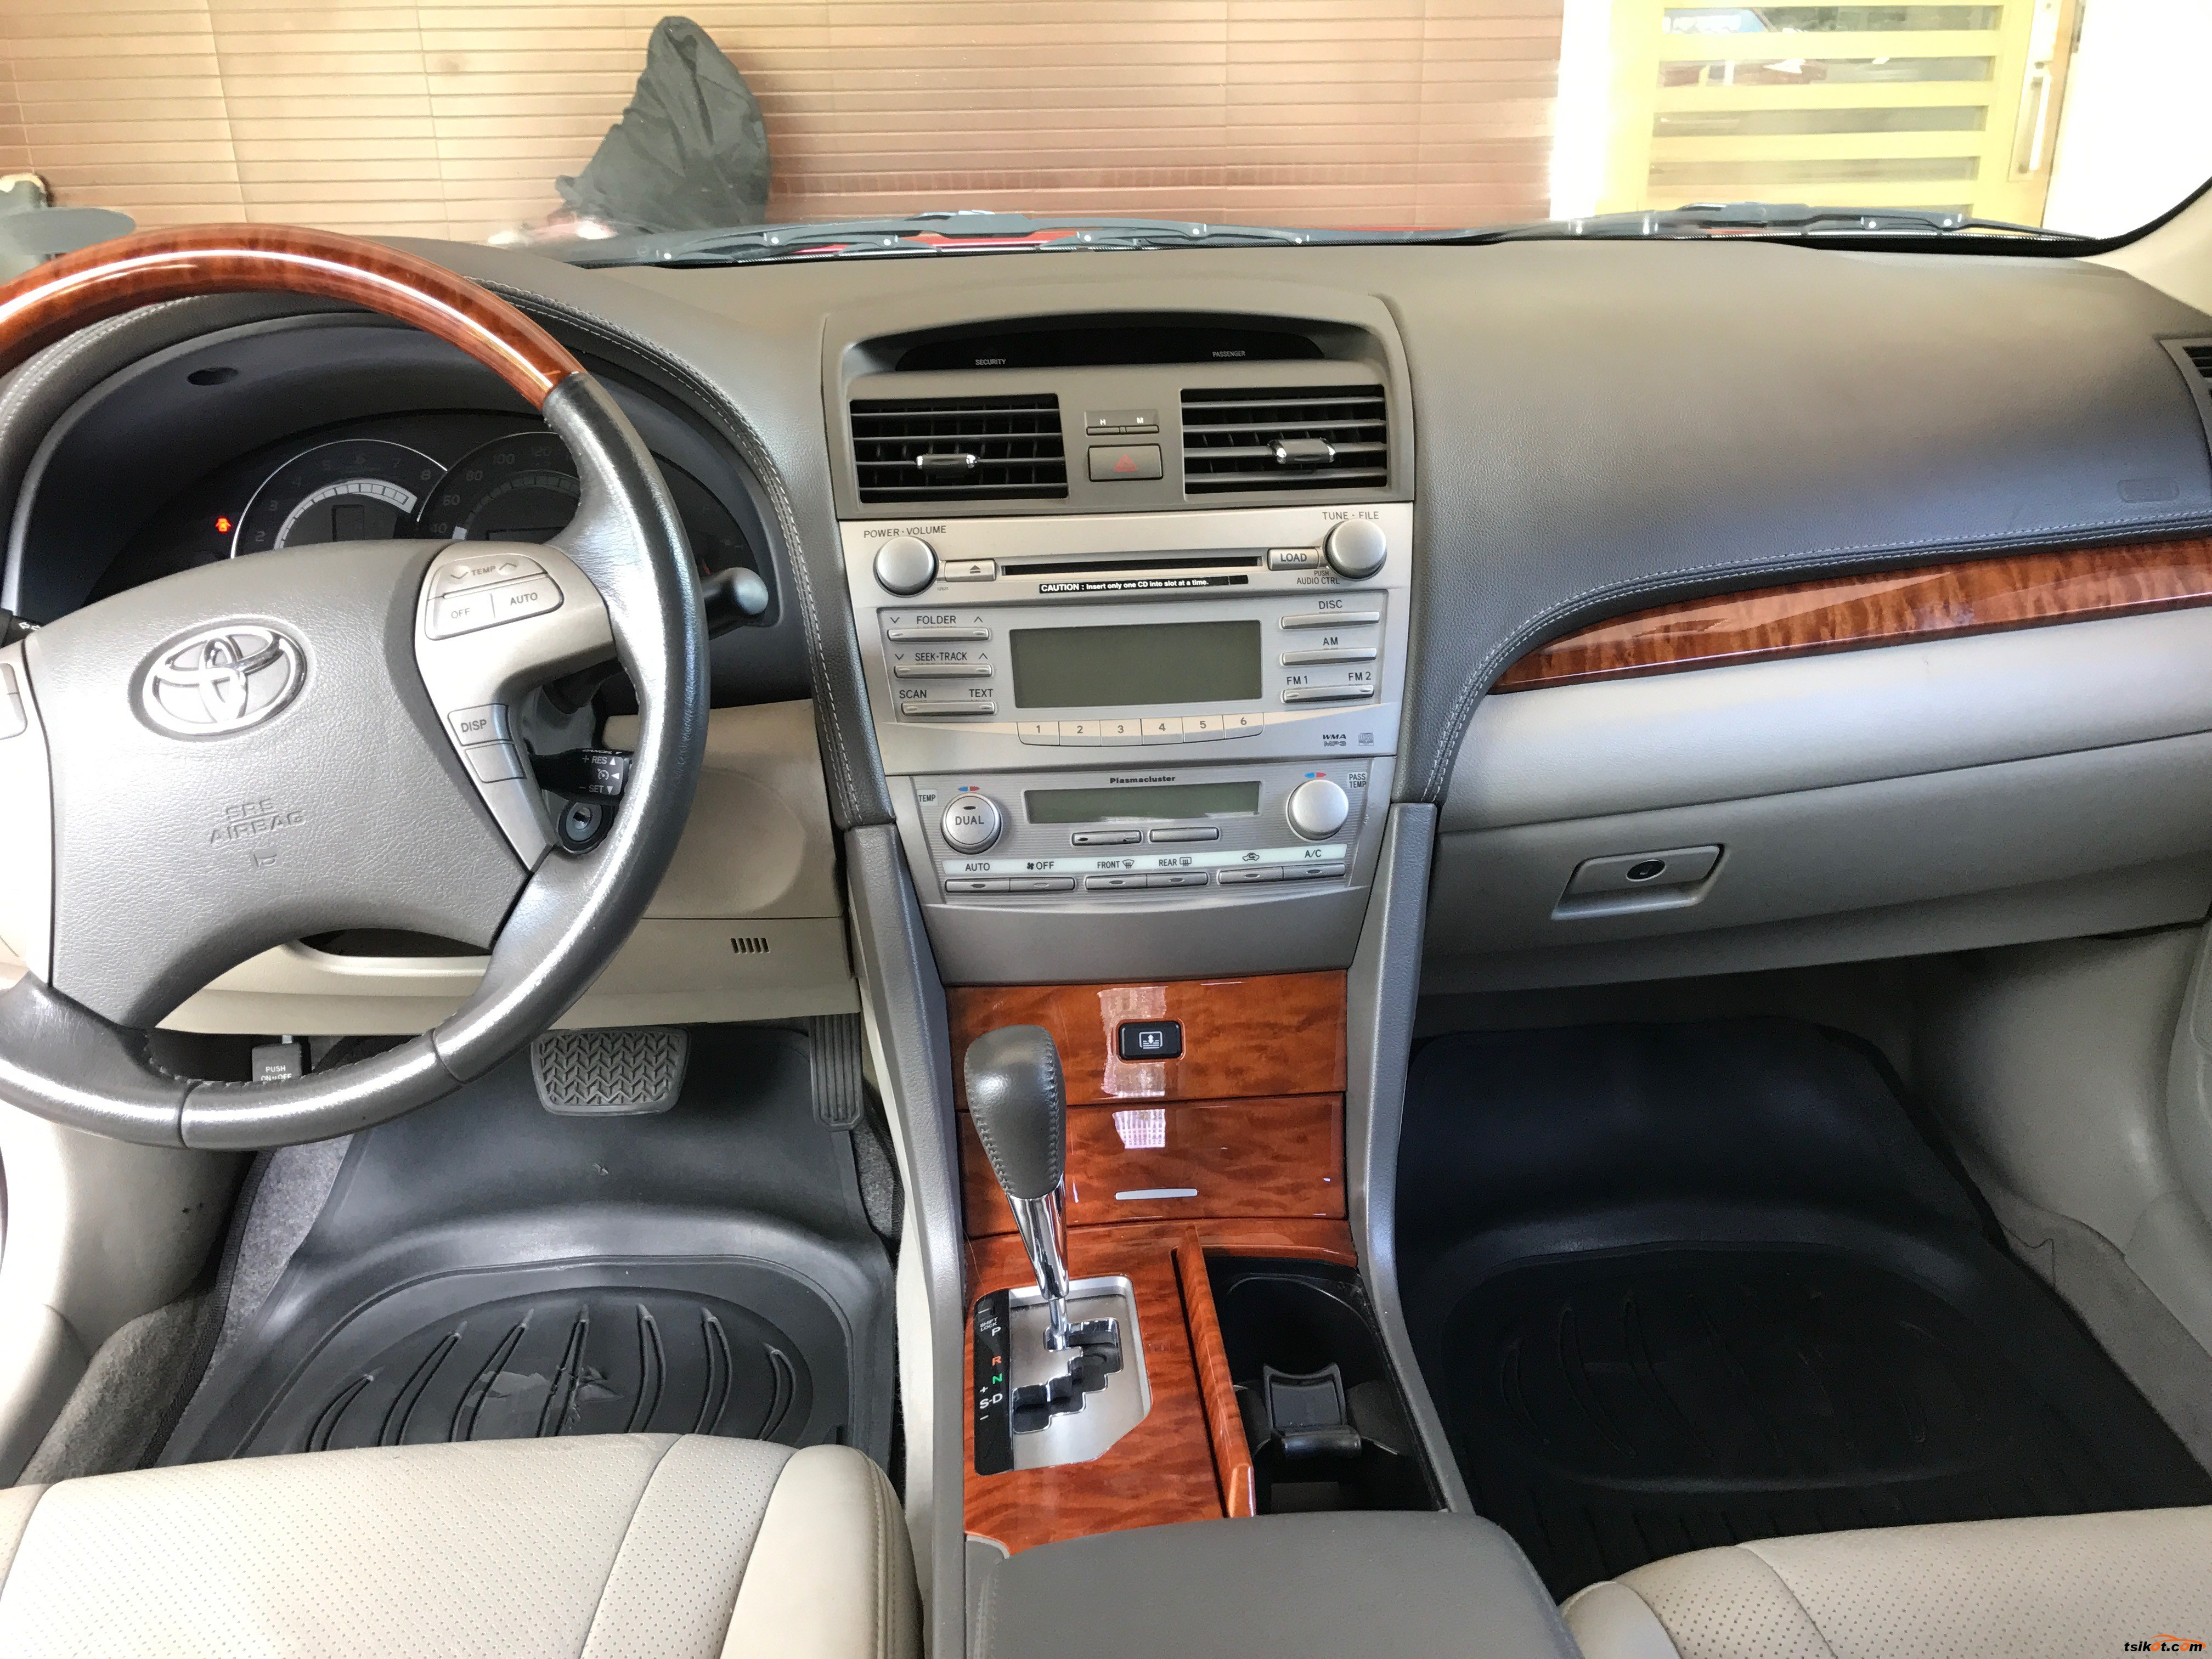 toyota camry 2006 car for sale 1 classifieds. Black Bedroom Furniture Sets. Home Design Ideas